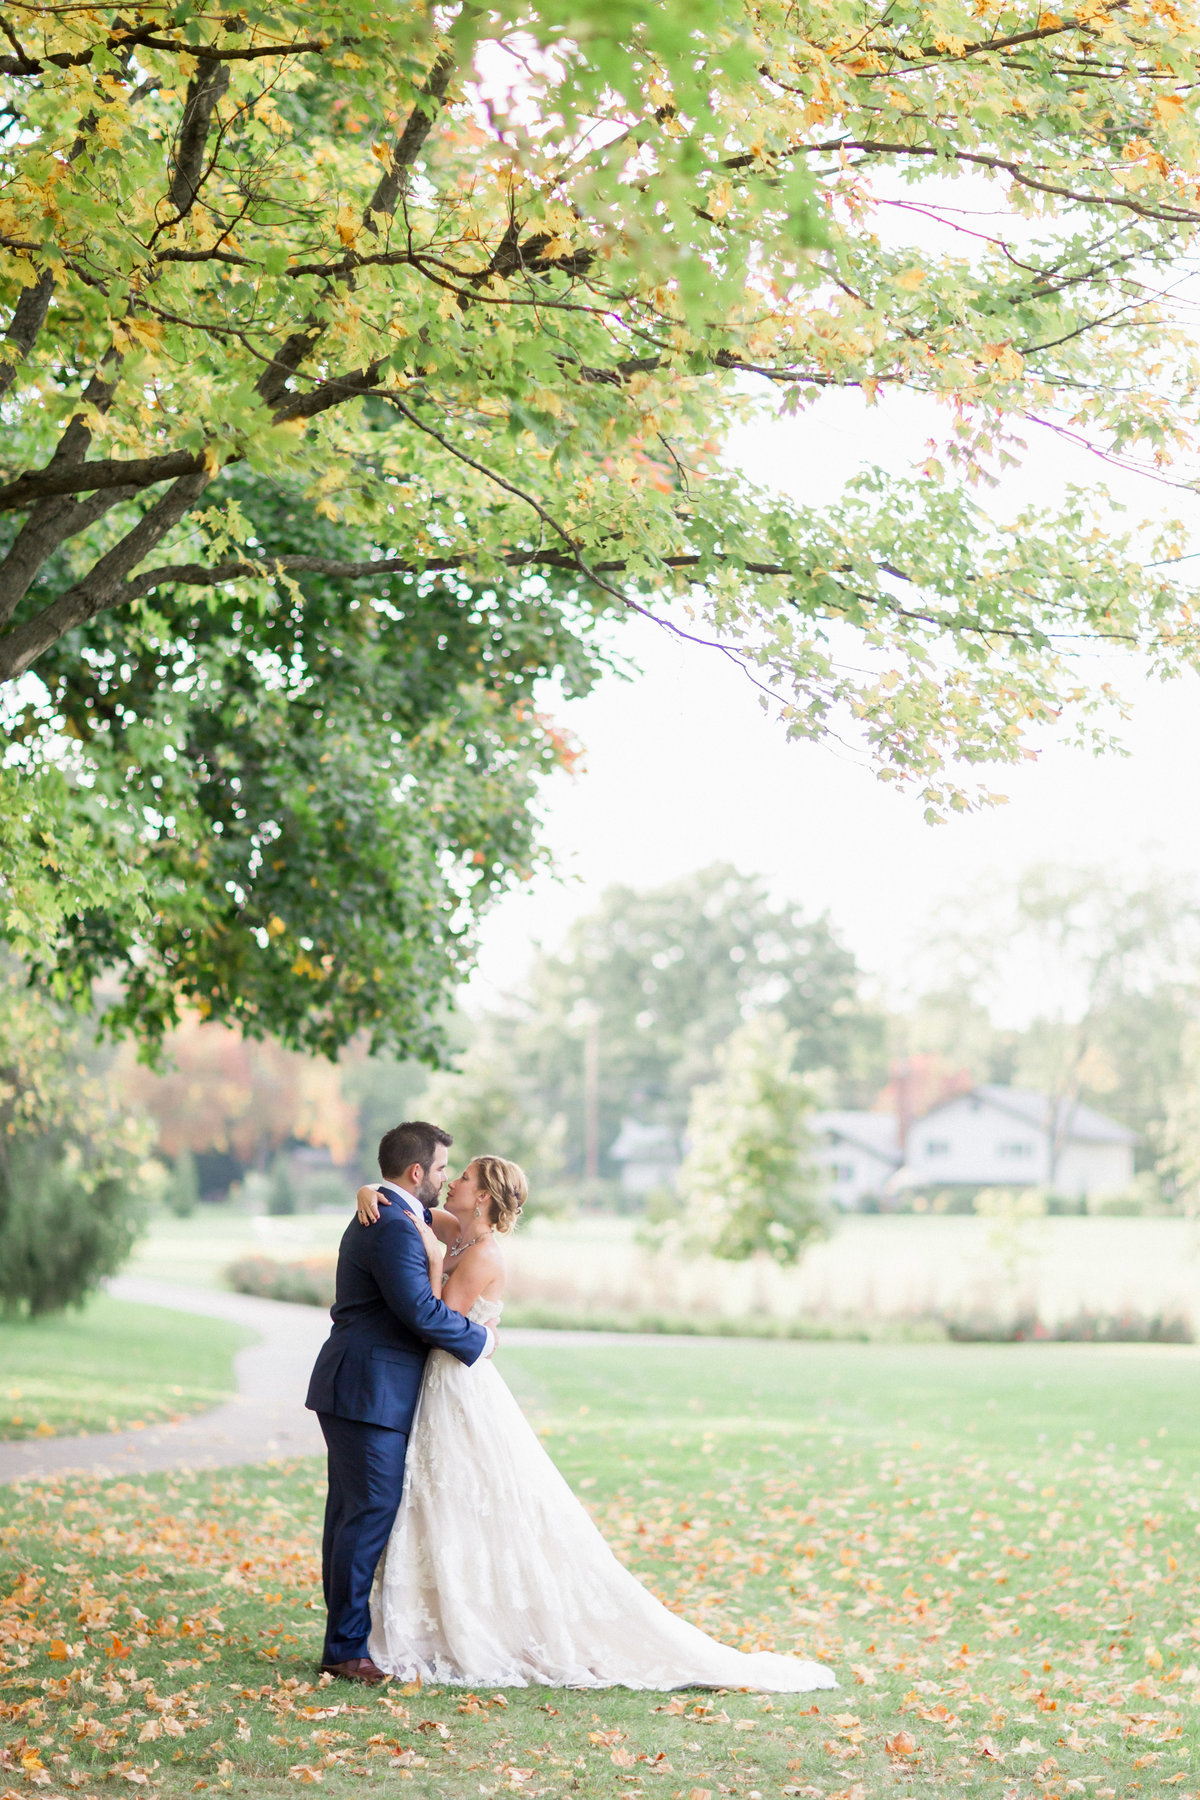 MiamiWeddingPhotography_TessaMaxinePhotography -116